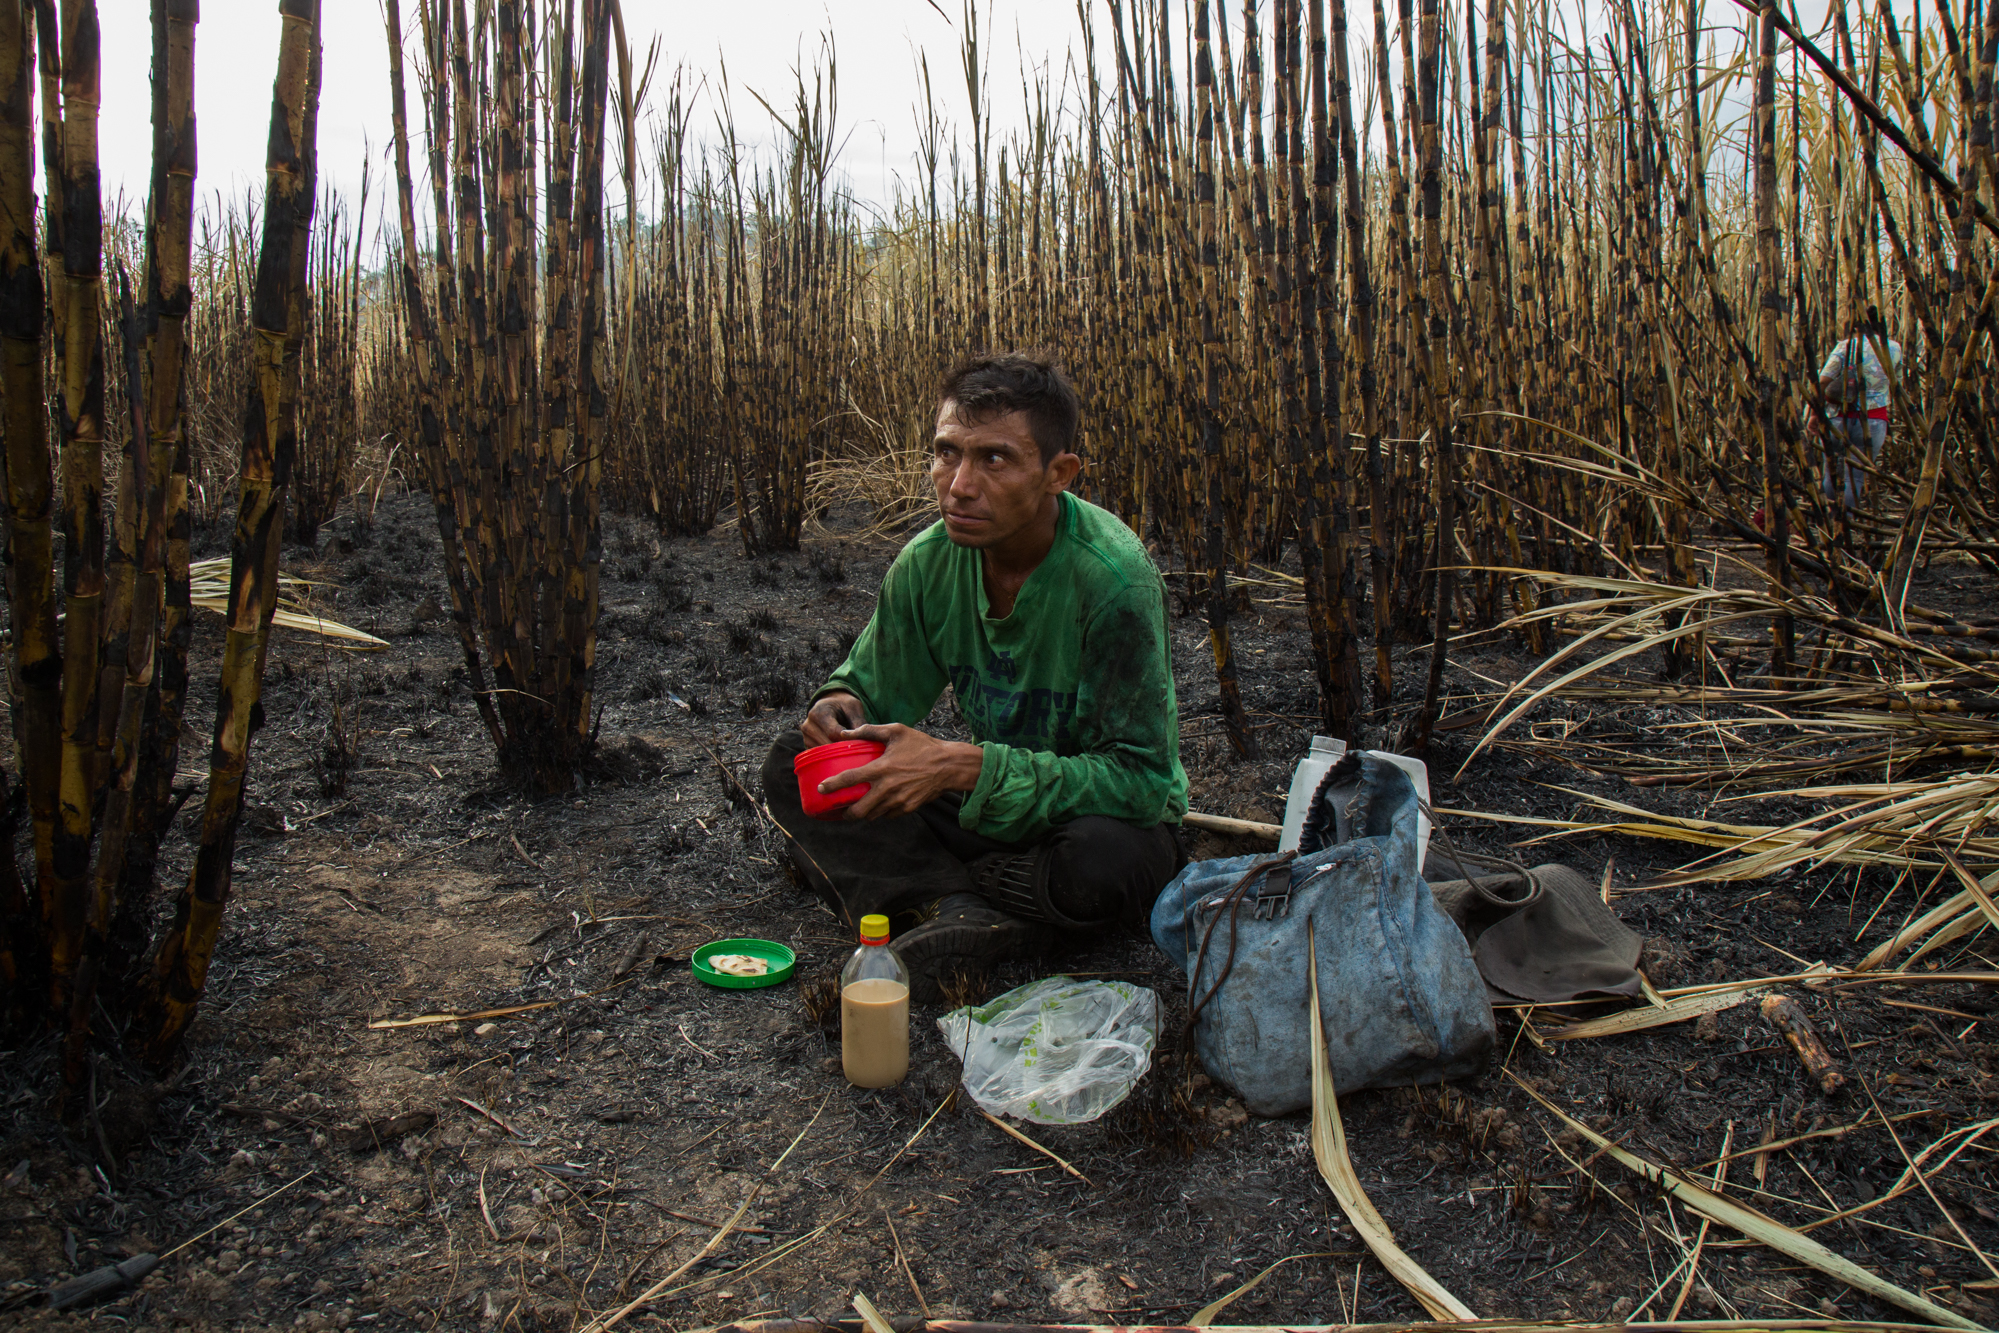 Celson Martinez, 40, of Los Almendros eats breakfast in a sugarcane field near Suchitoto, El Salvador.